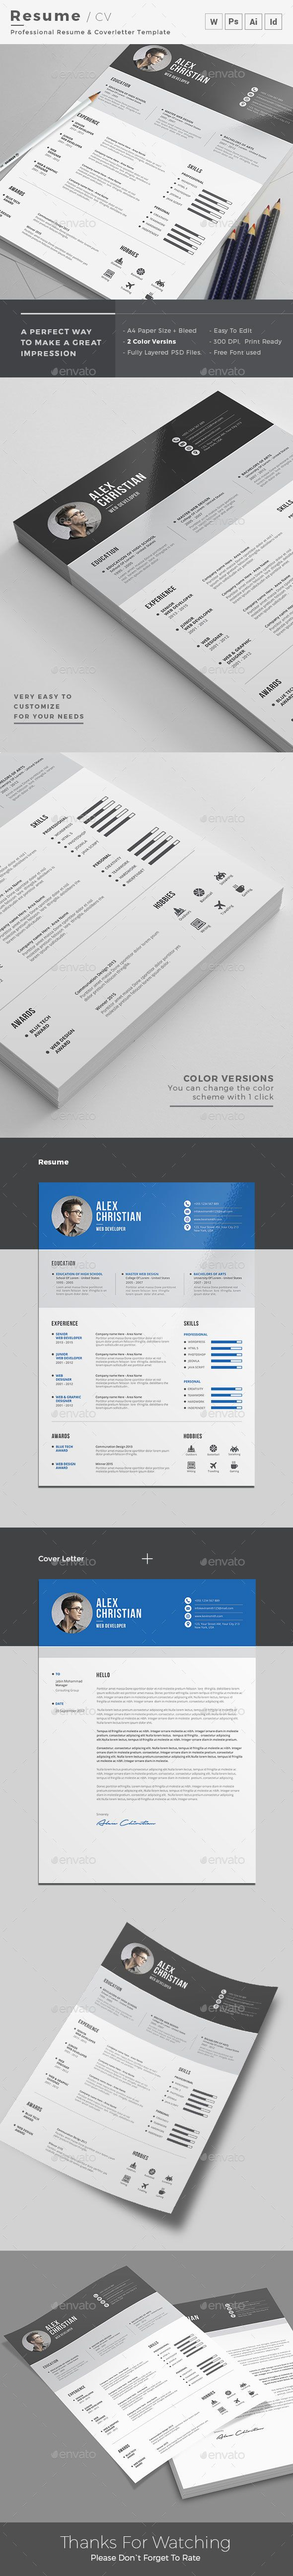 Resume 72 best Printable Design images on